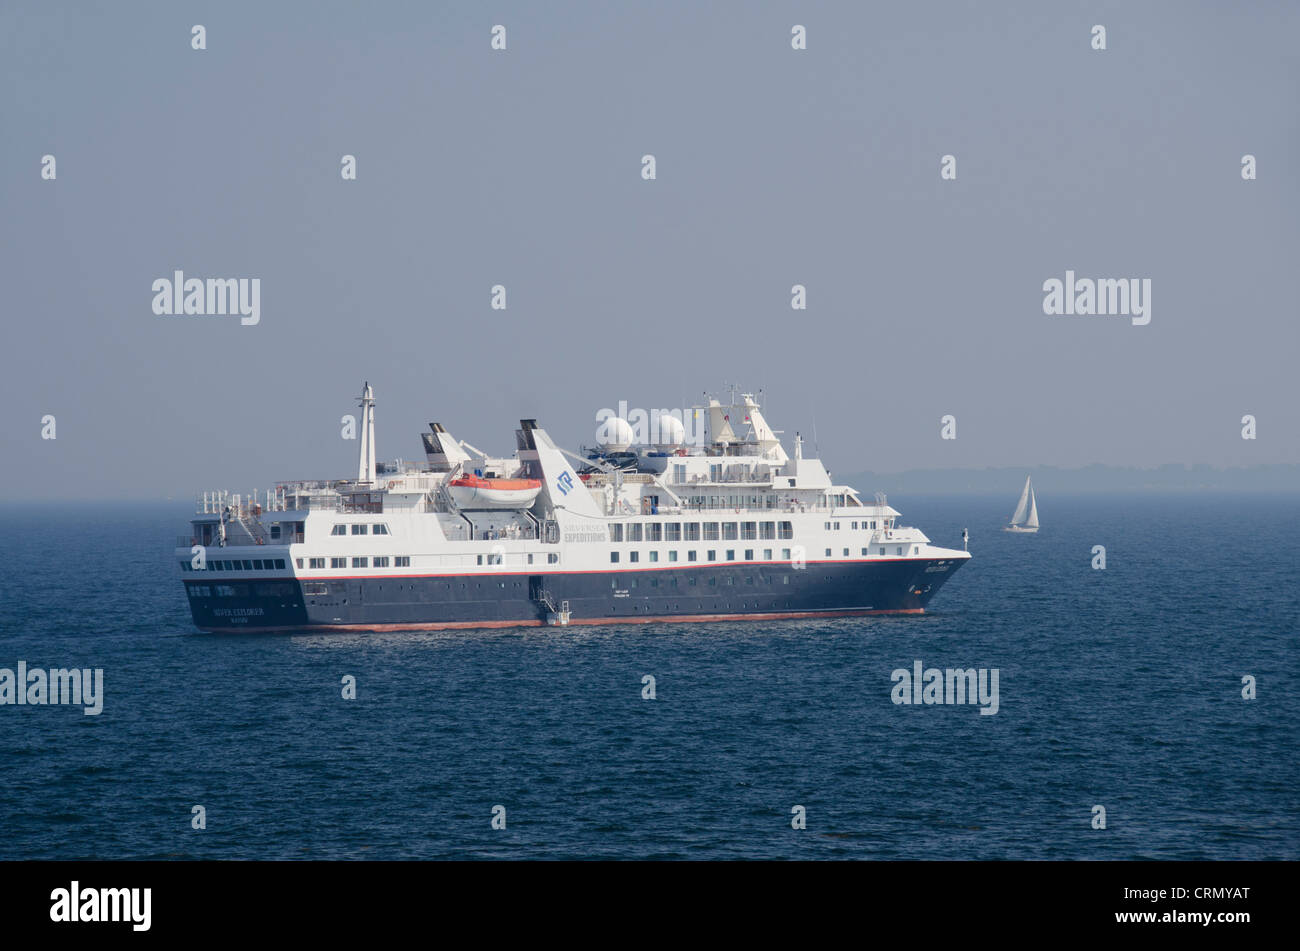 Denmark, Helsingoer. Silversea Expeditions ship the Silver Explorer anchored in the North Sea at Denmark. - Stock Image